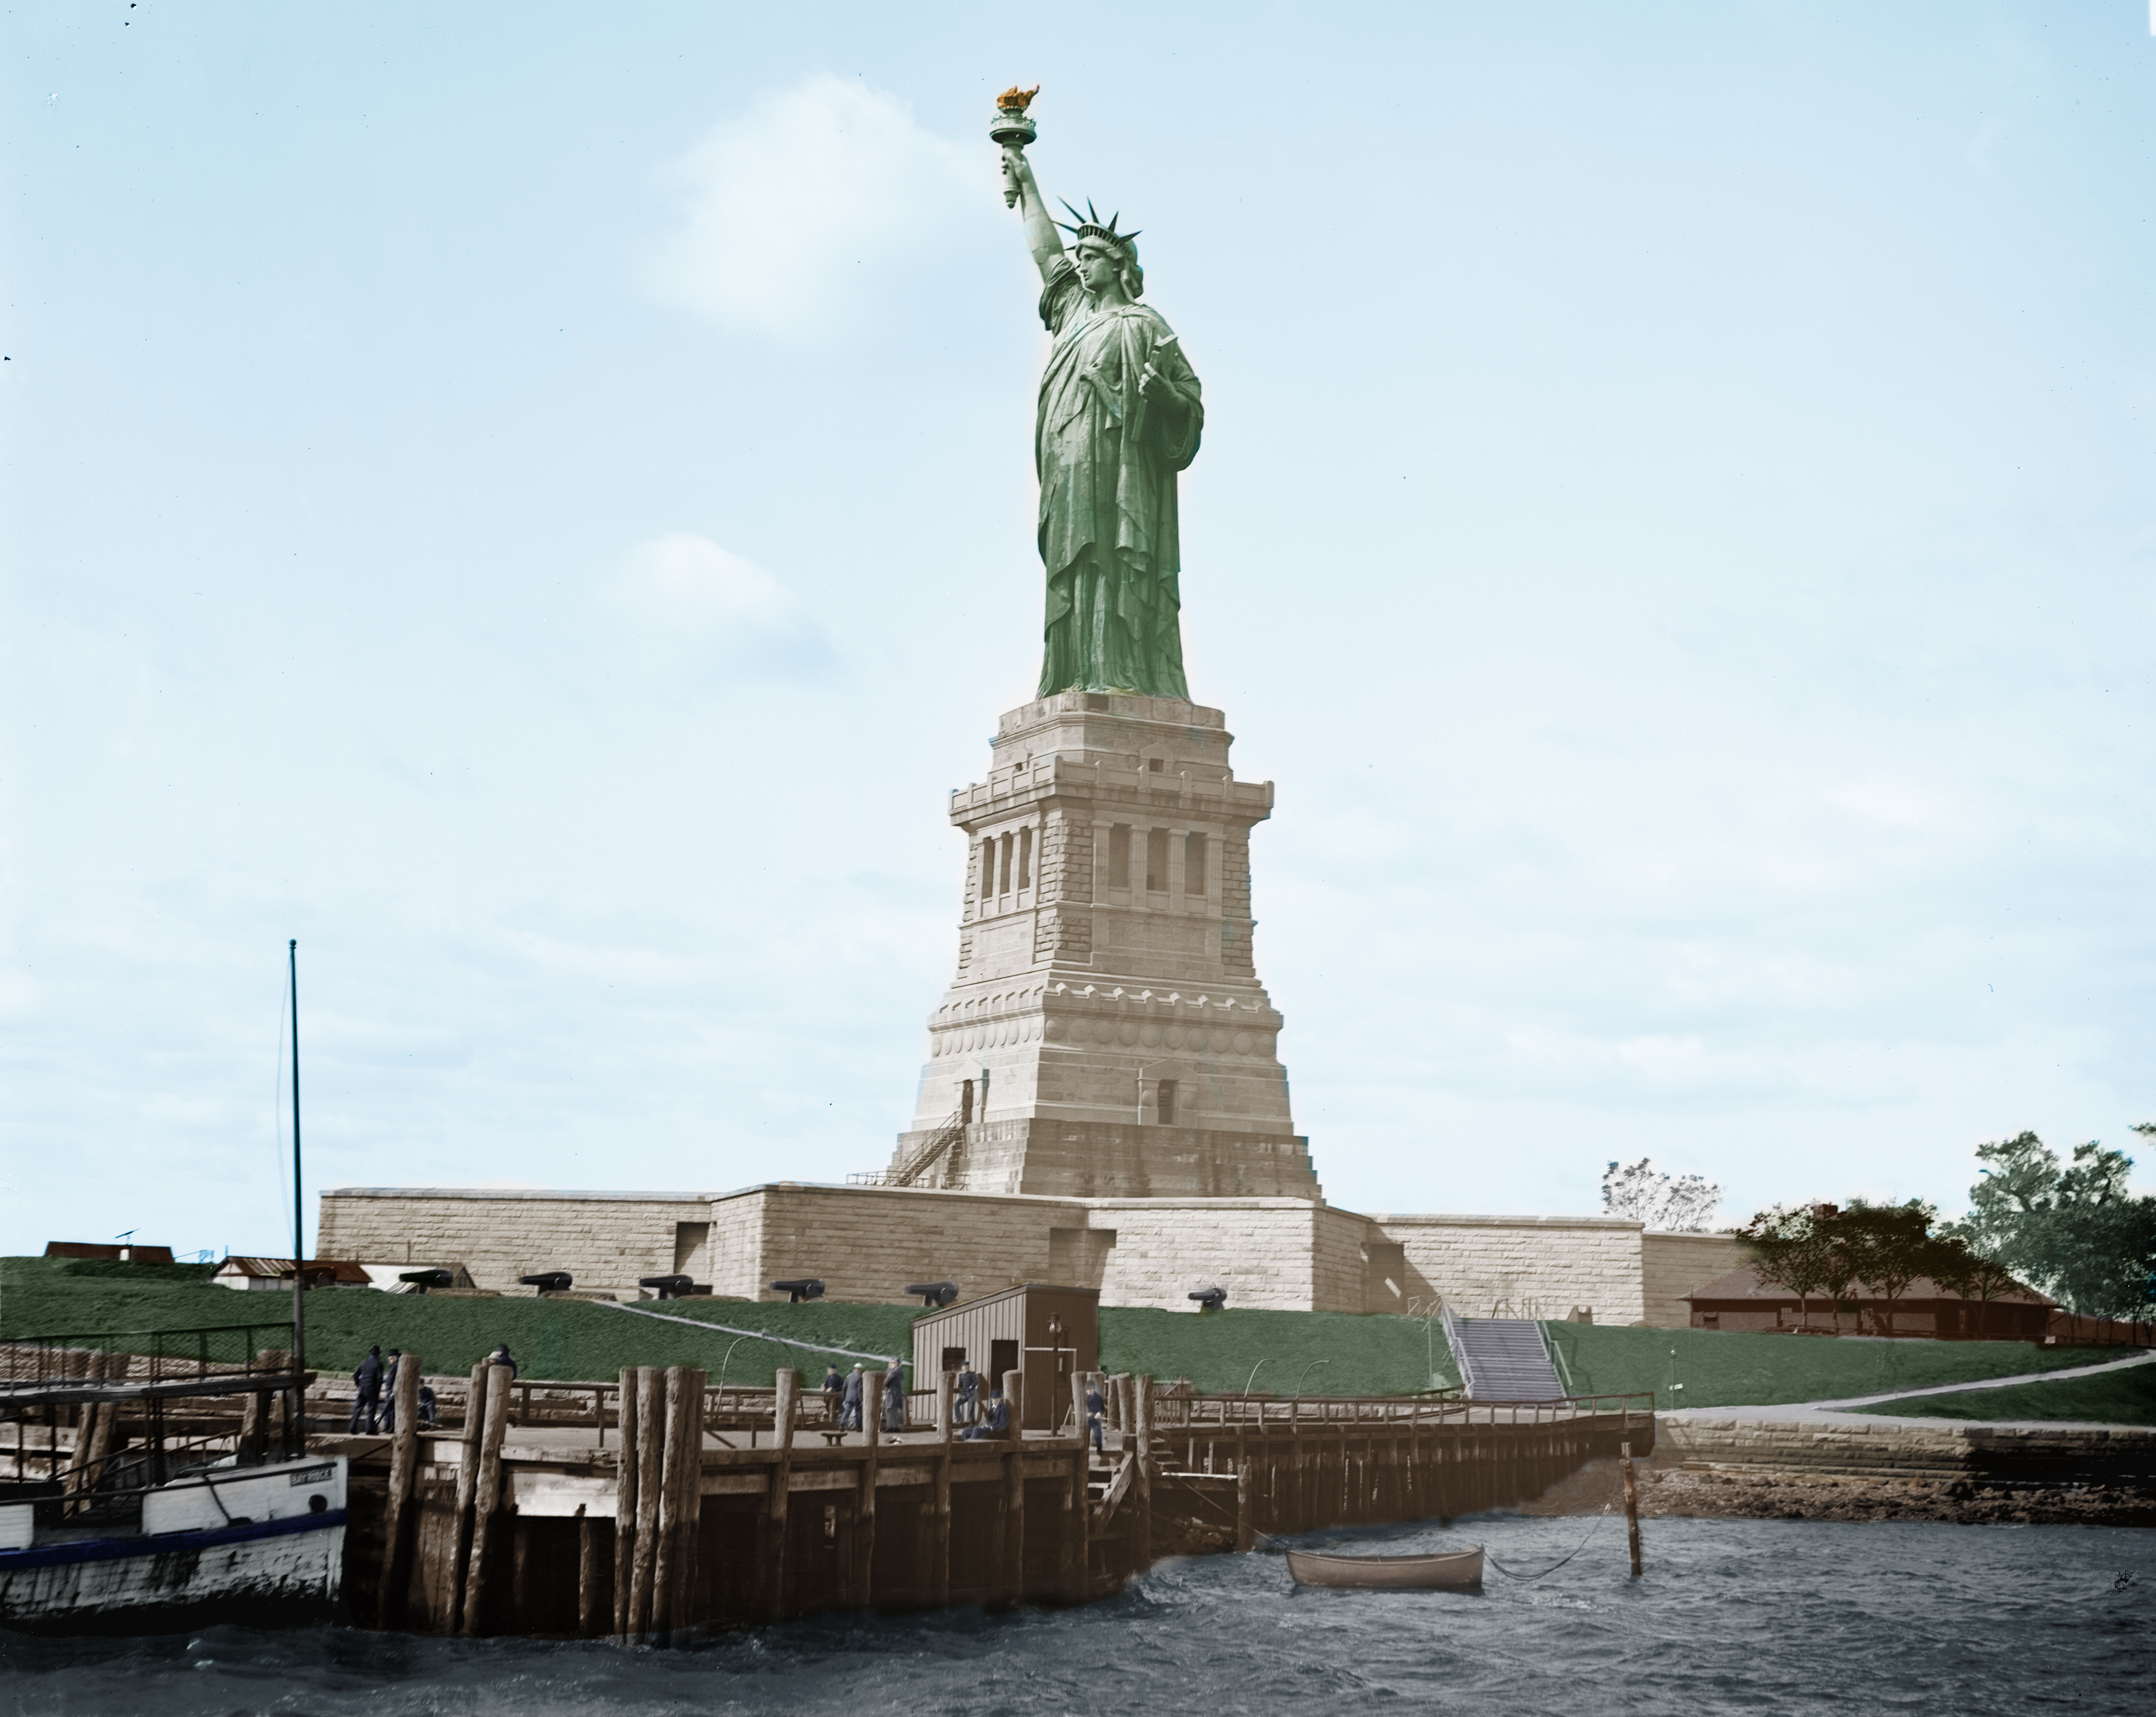 The Statue Of Liberty Approx 1903 1910 When The Oxidation Of Copper Began To Turn It Green Colorized 8979 X 7152 Statue Of Liberty Statue Liberty